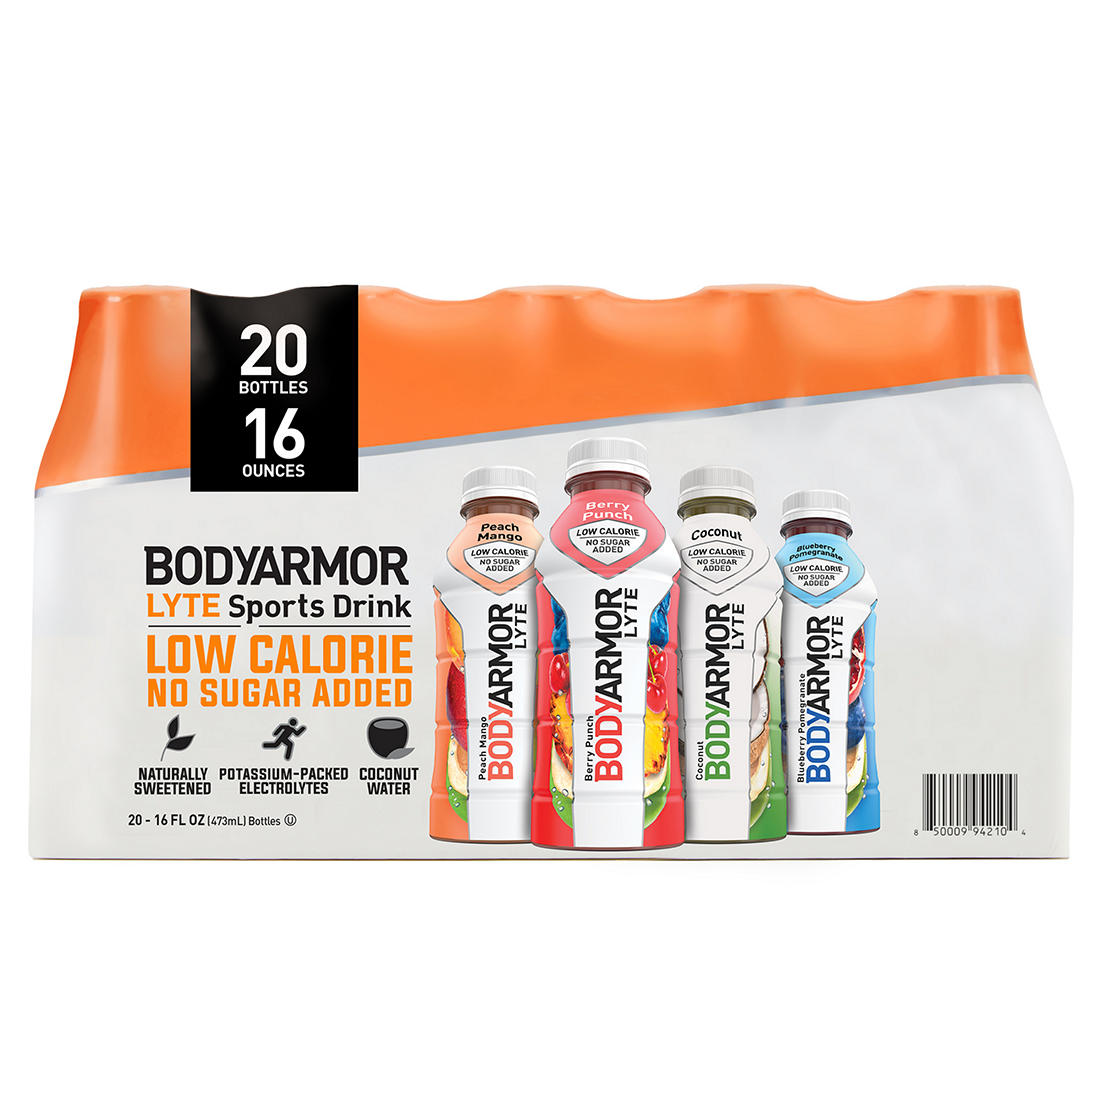 BODYARMOR LYTE Sports Drink, 20 pk.16 oz.